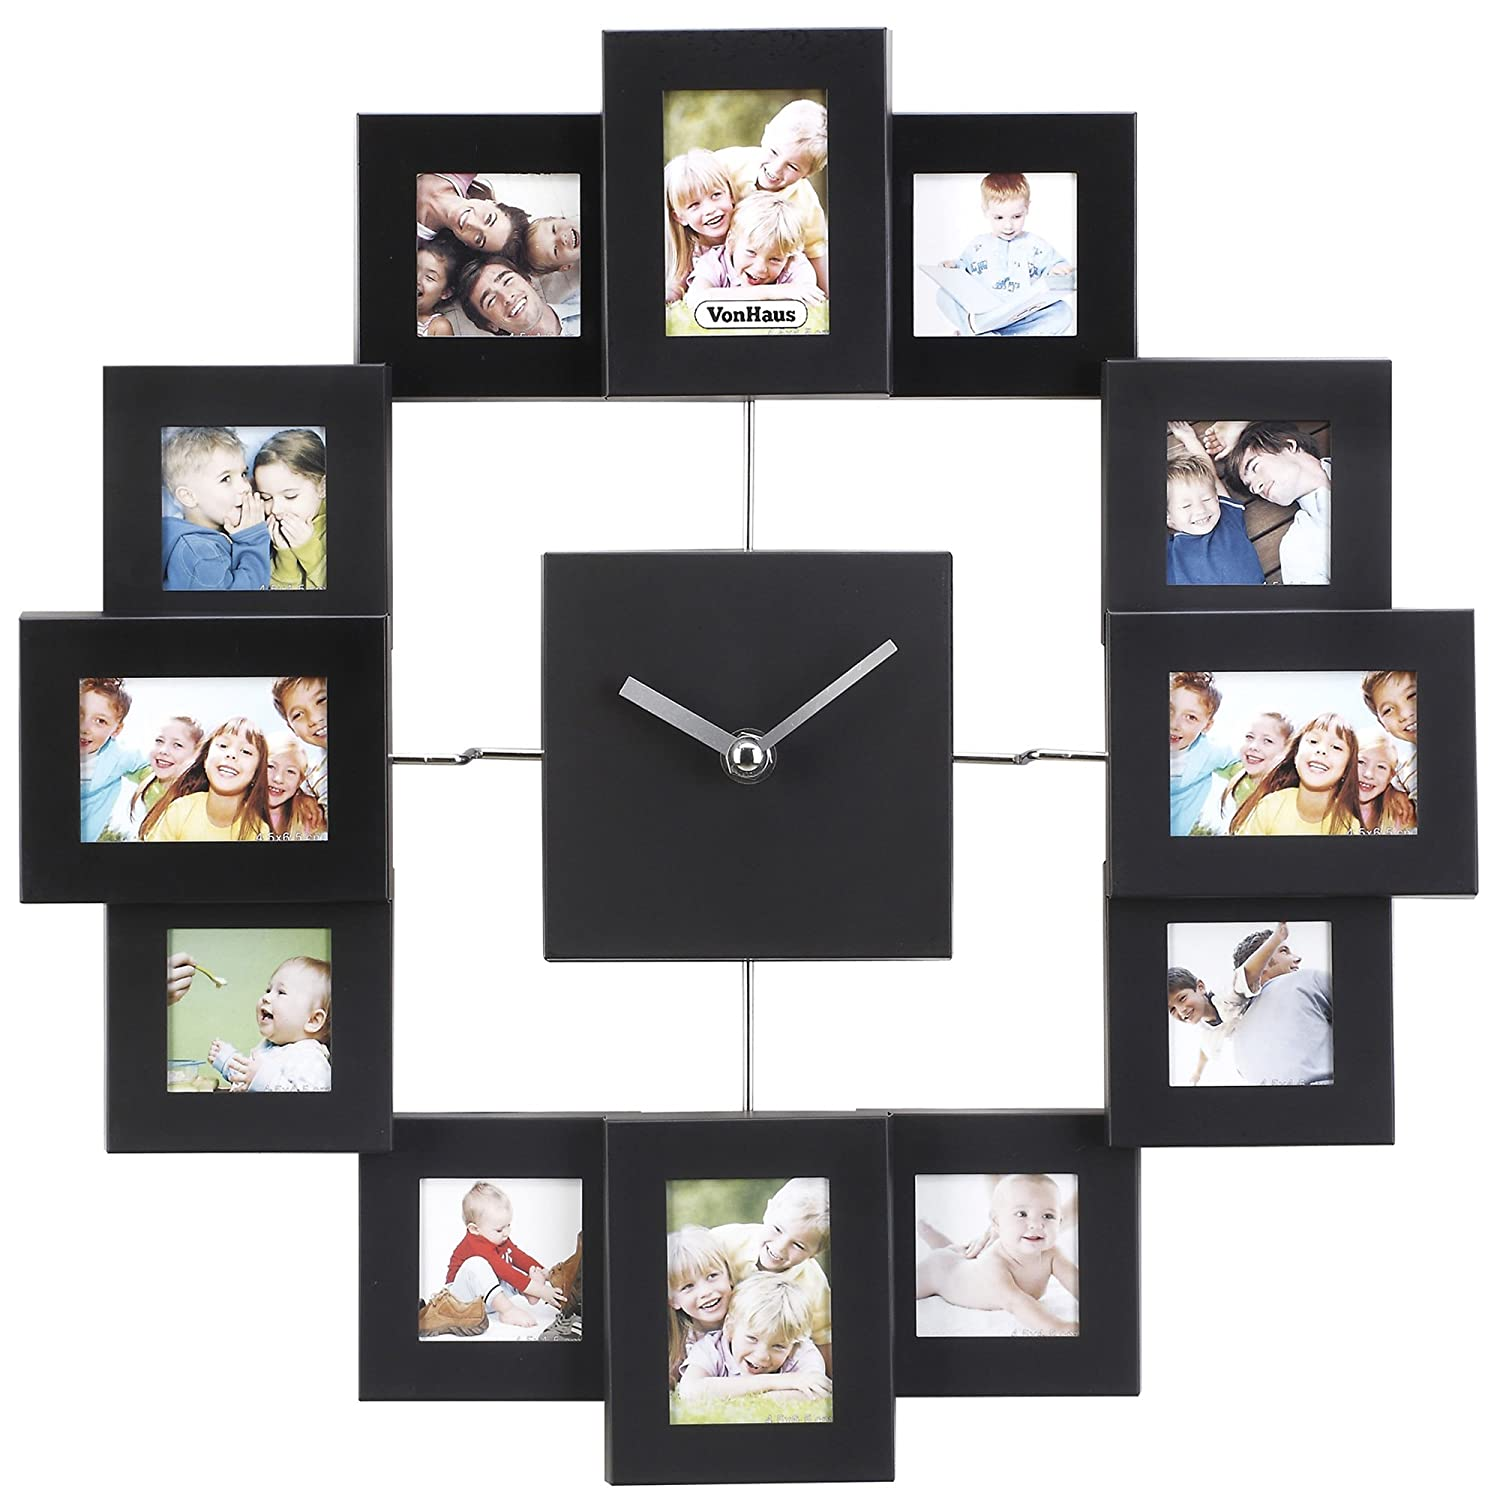 Amazon vonhaus picture frame wall clock 12 mini photo amazon vonhaus picture frame wall clock 12 mini photo frames crop to size friends family pictures aluminum black home kitchen amipublicfo Gallery